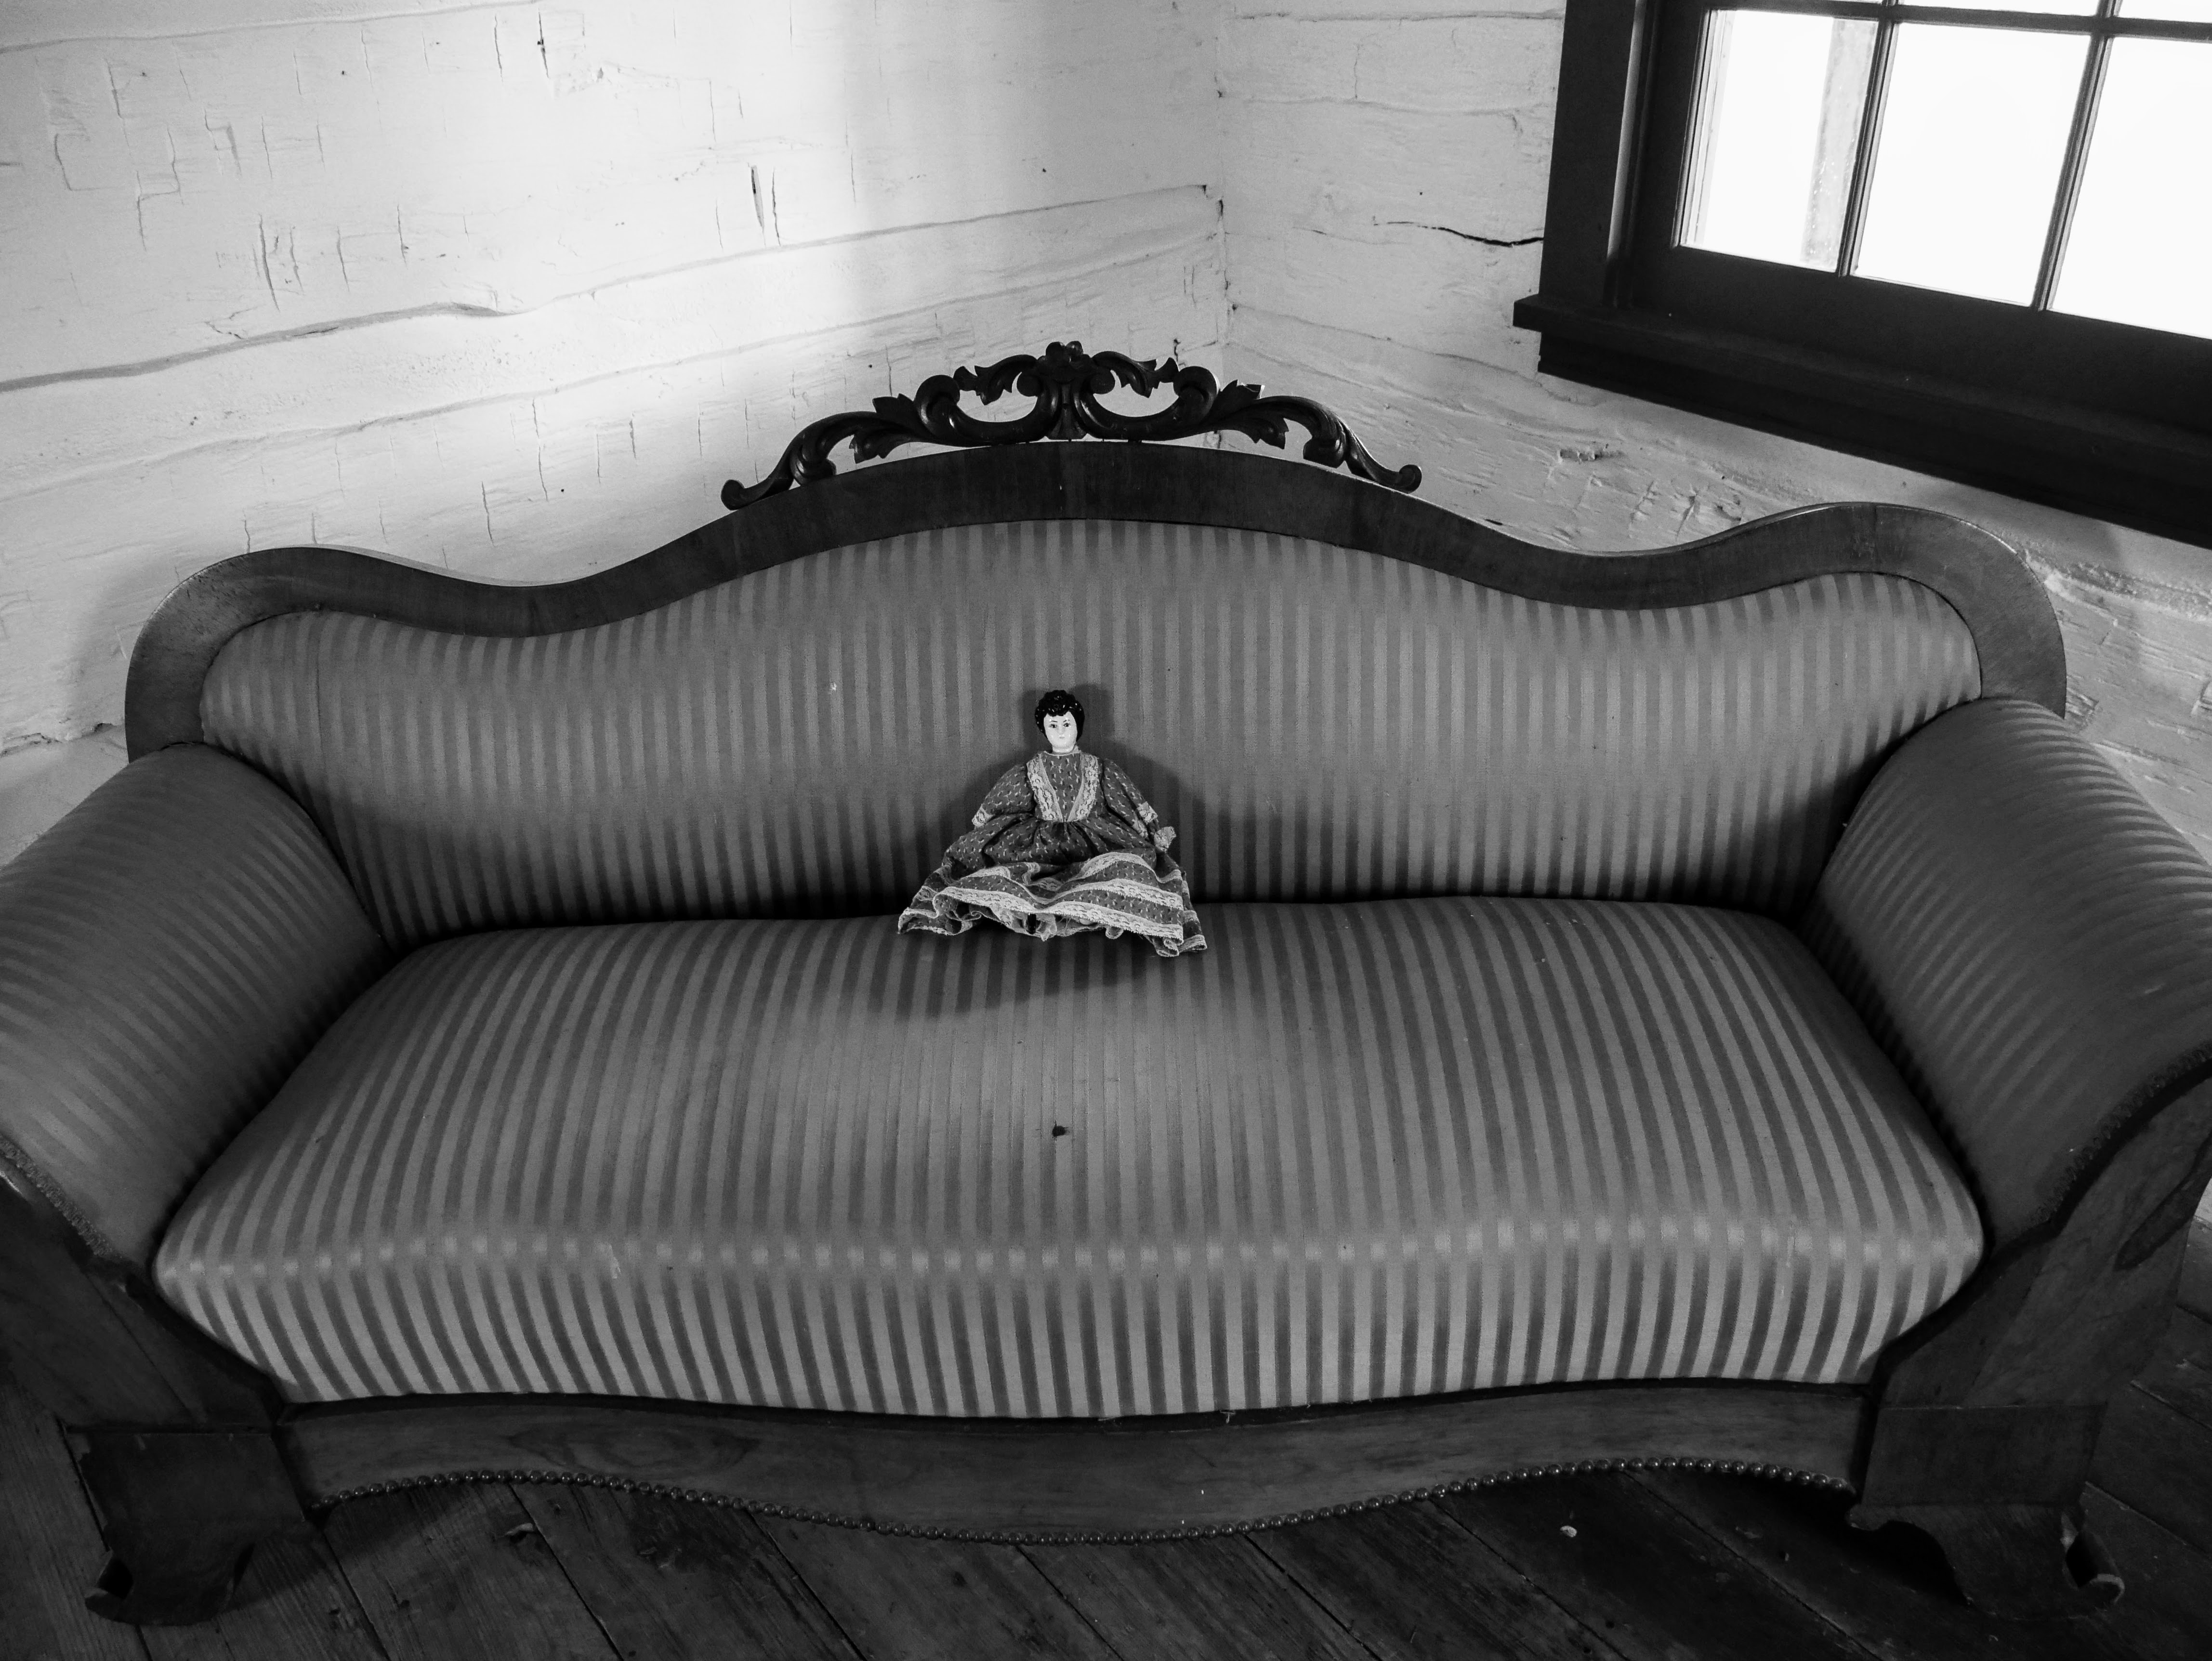 In the corner of a white-washed room, a wooden couch with striped upholstery is sat at an angle. A small ceramic doll in a fabric dress is in the middle of the couch.